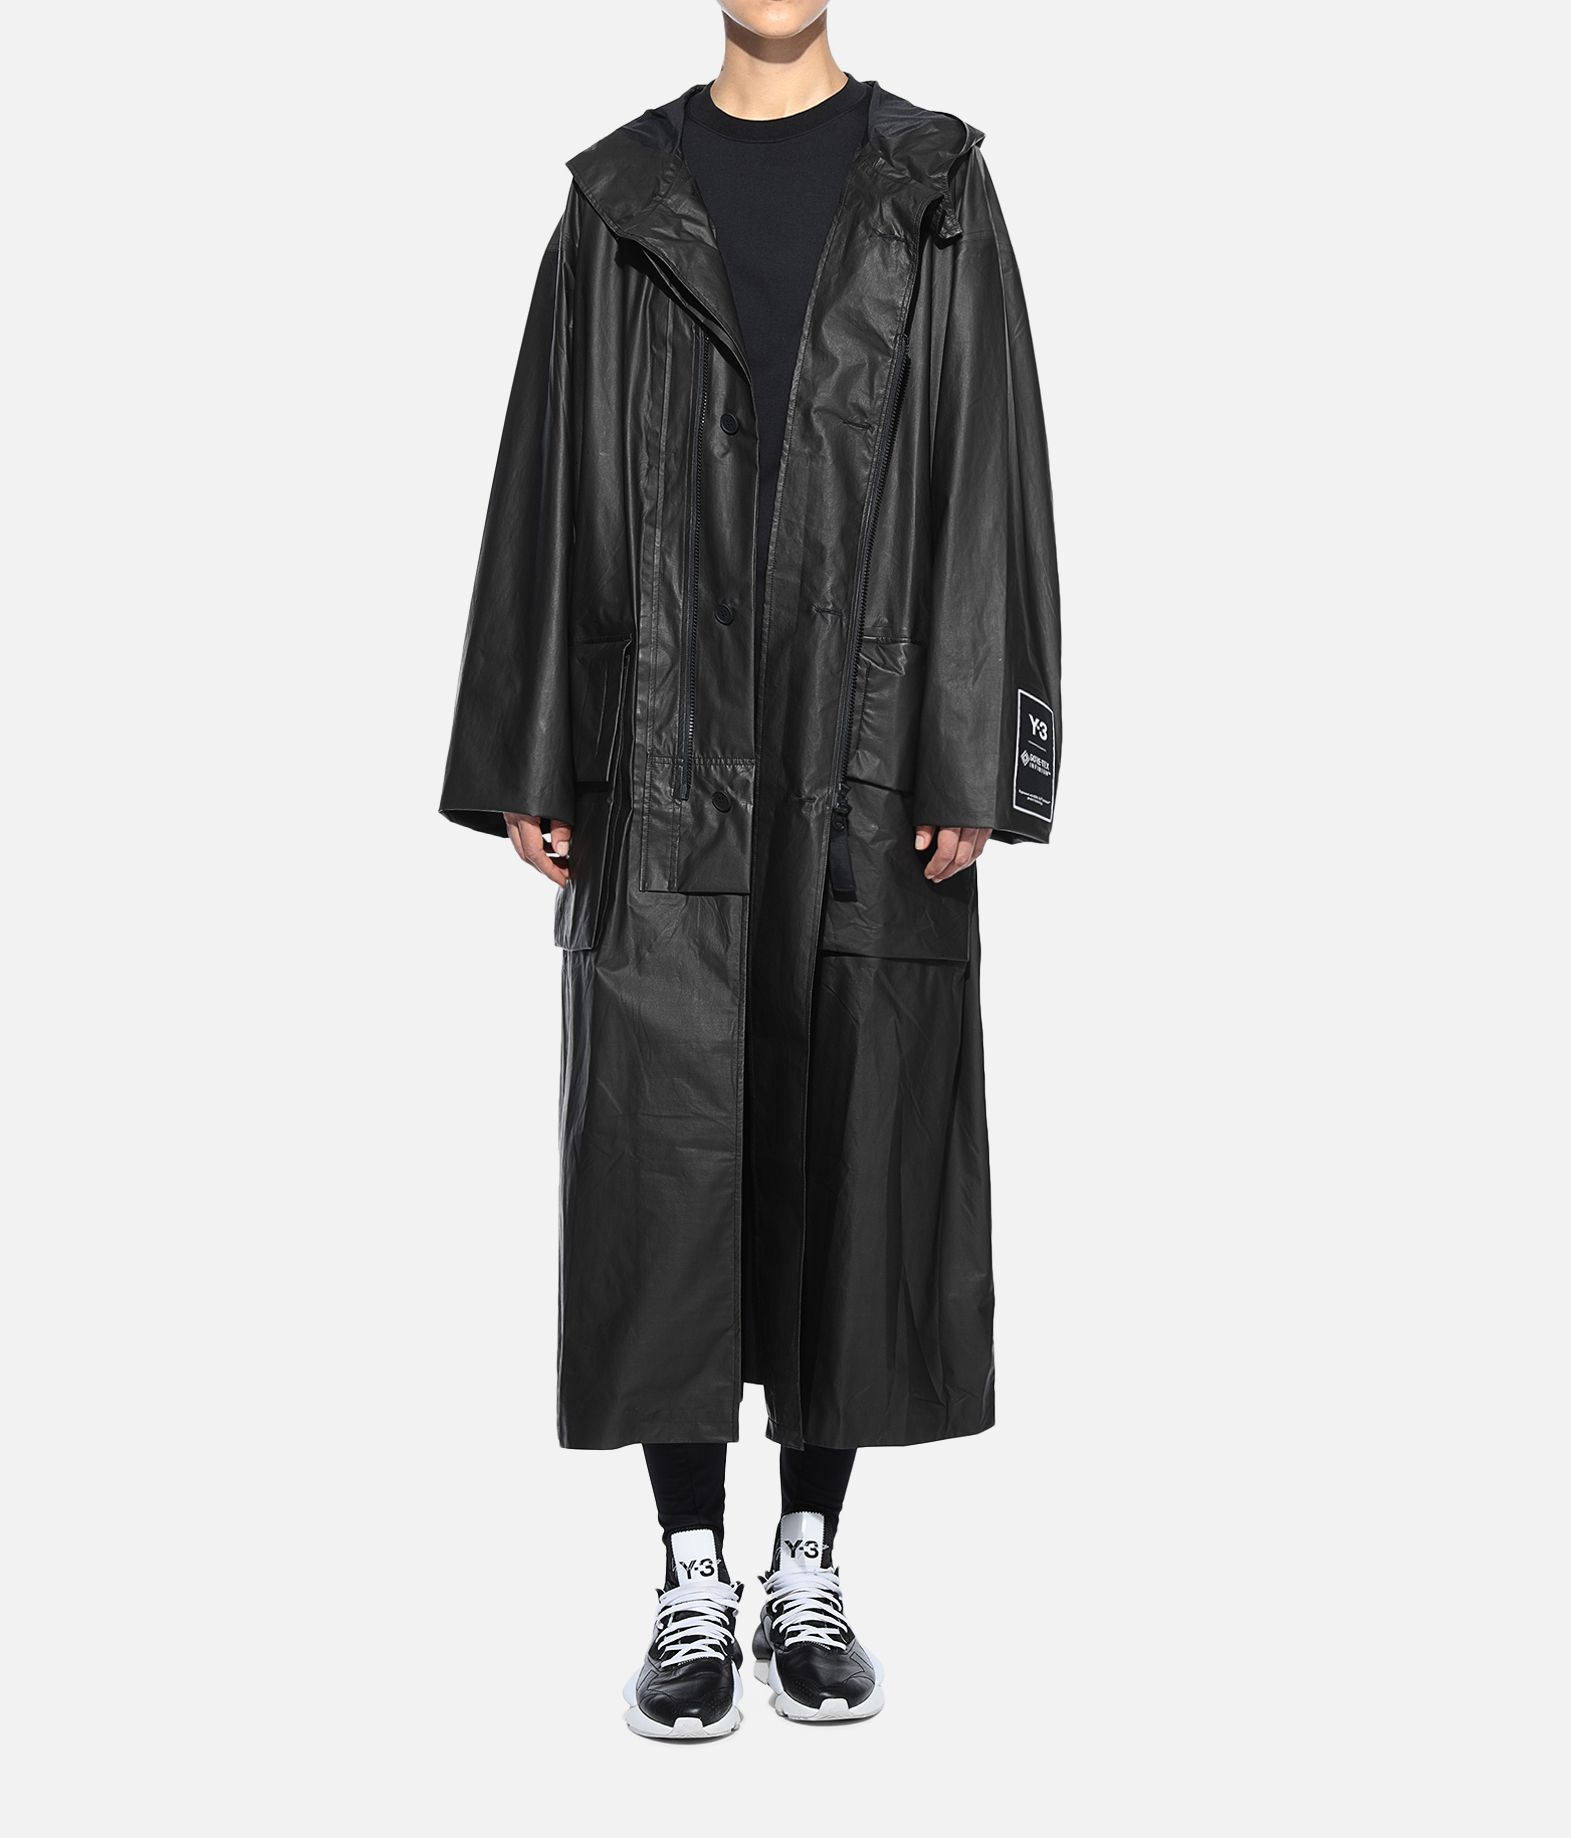 Y-3 Y-3 GORE-TEX Long Coat Full-length jacket Woman a